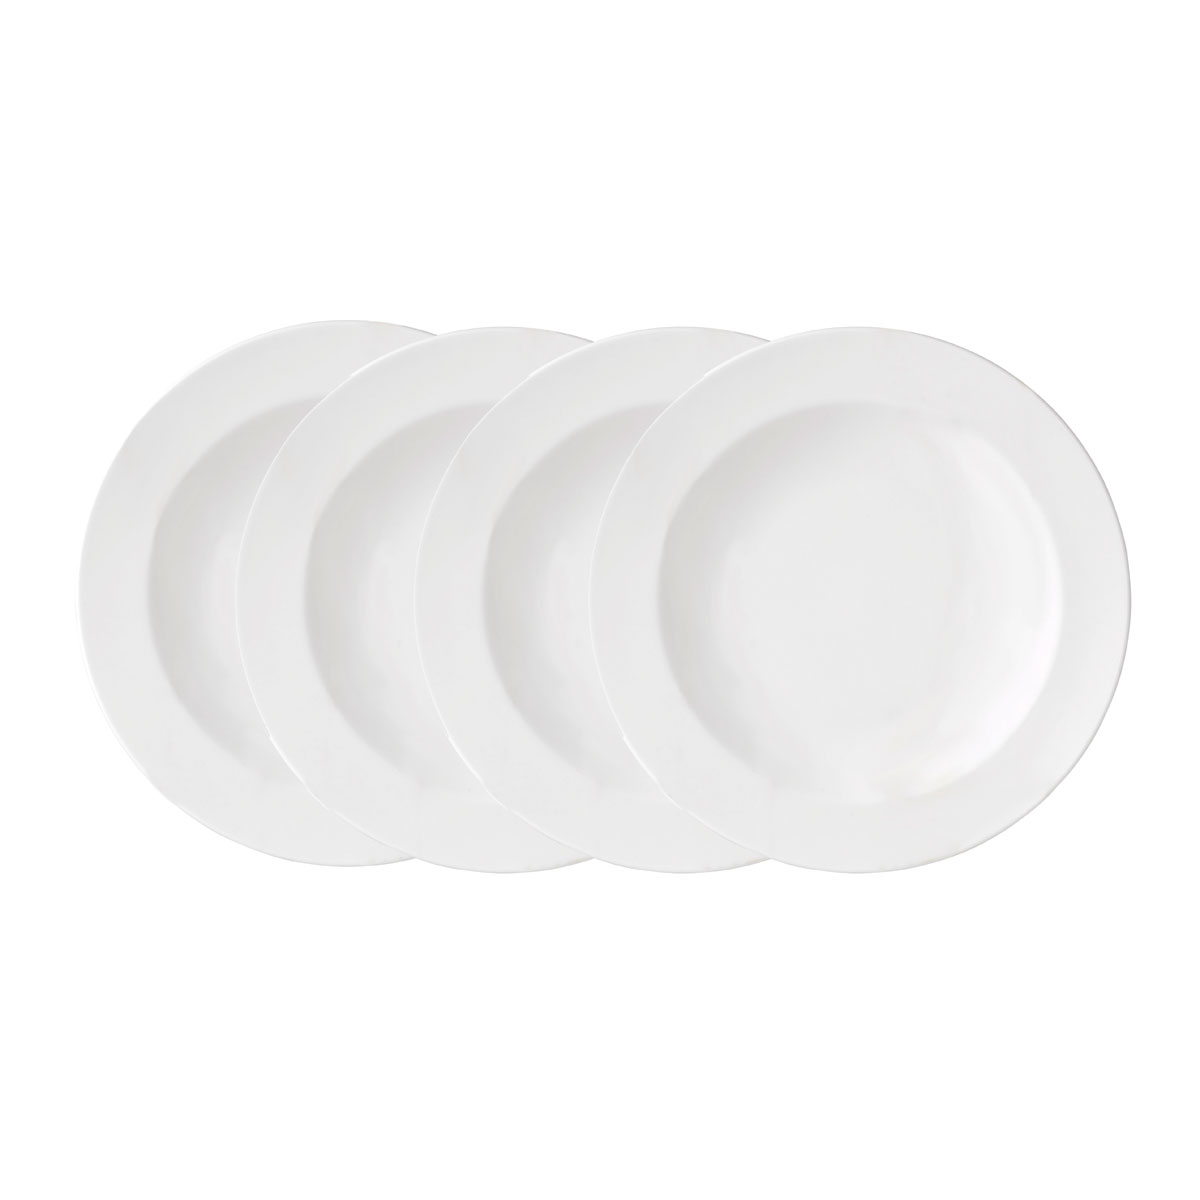 Vera Wang Wedgwood Bone China Perfect White Rim Soup Set of Four